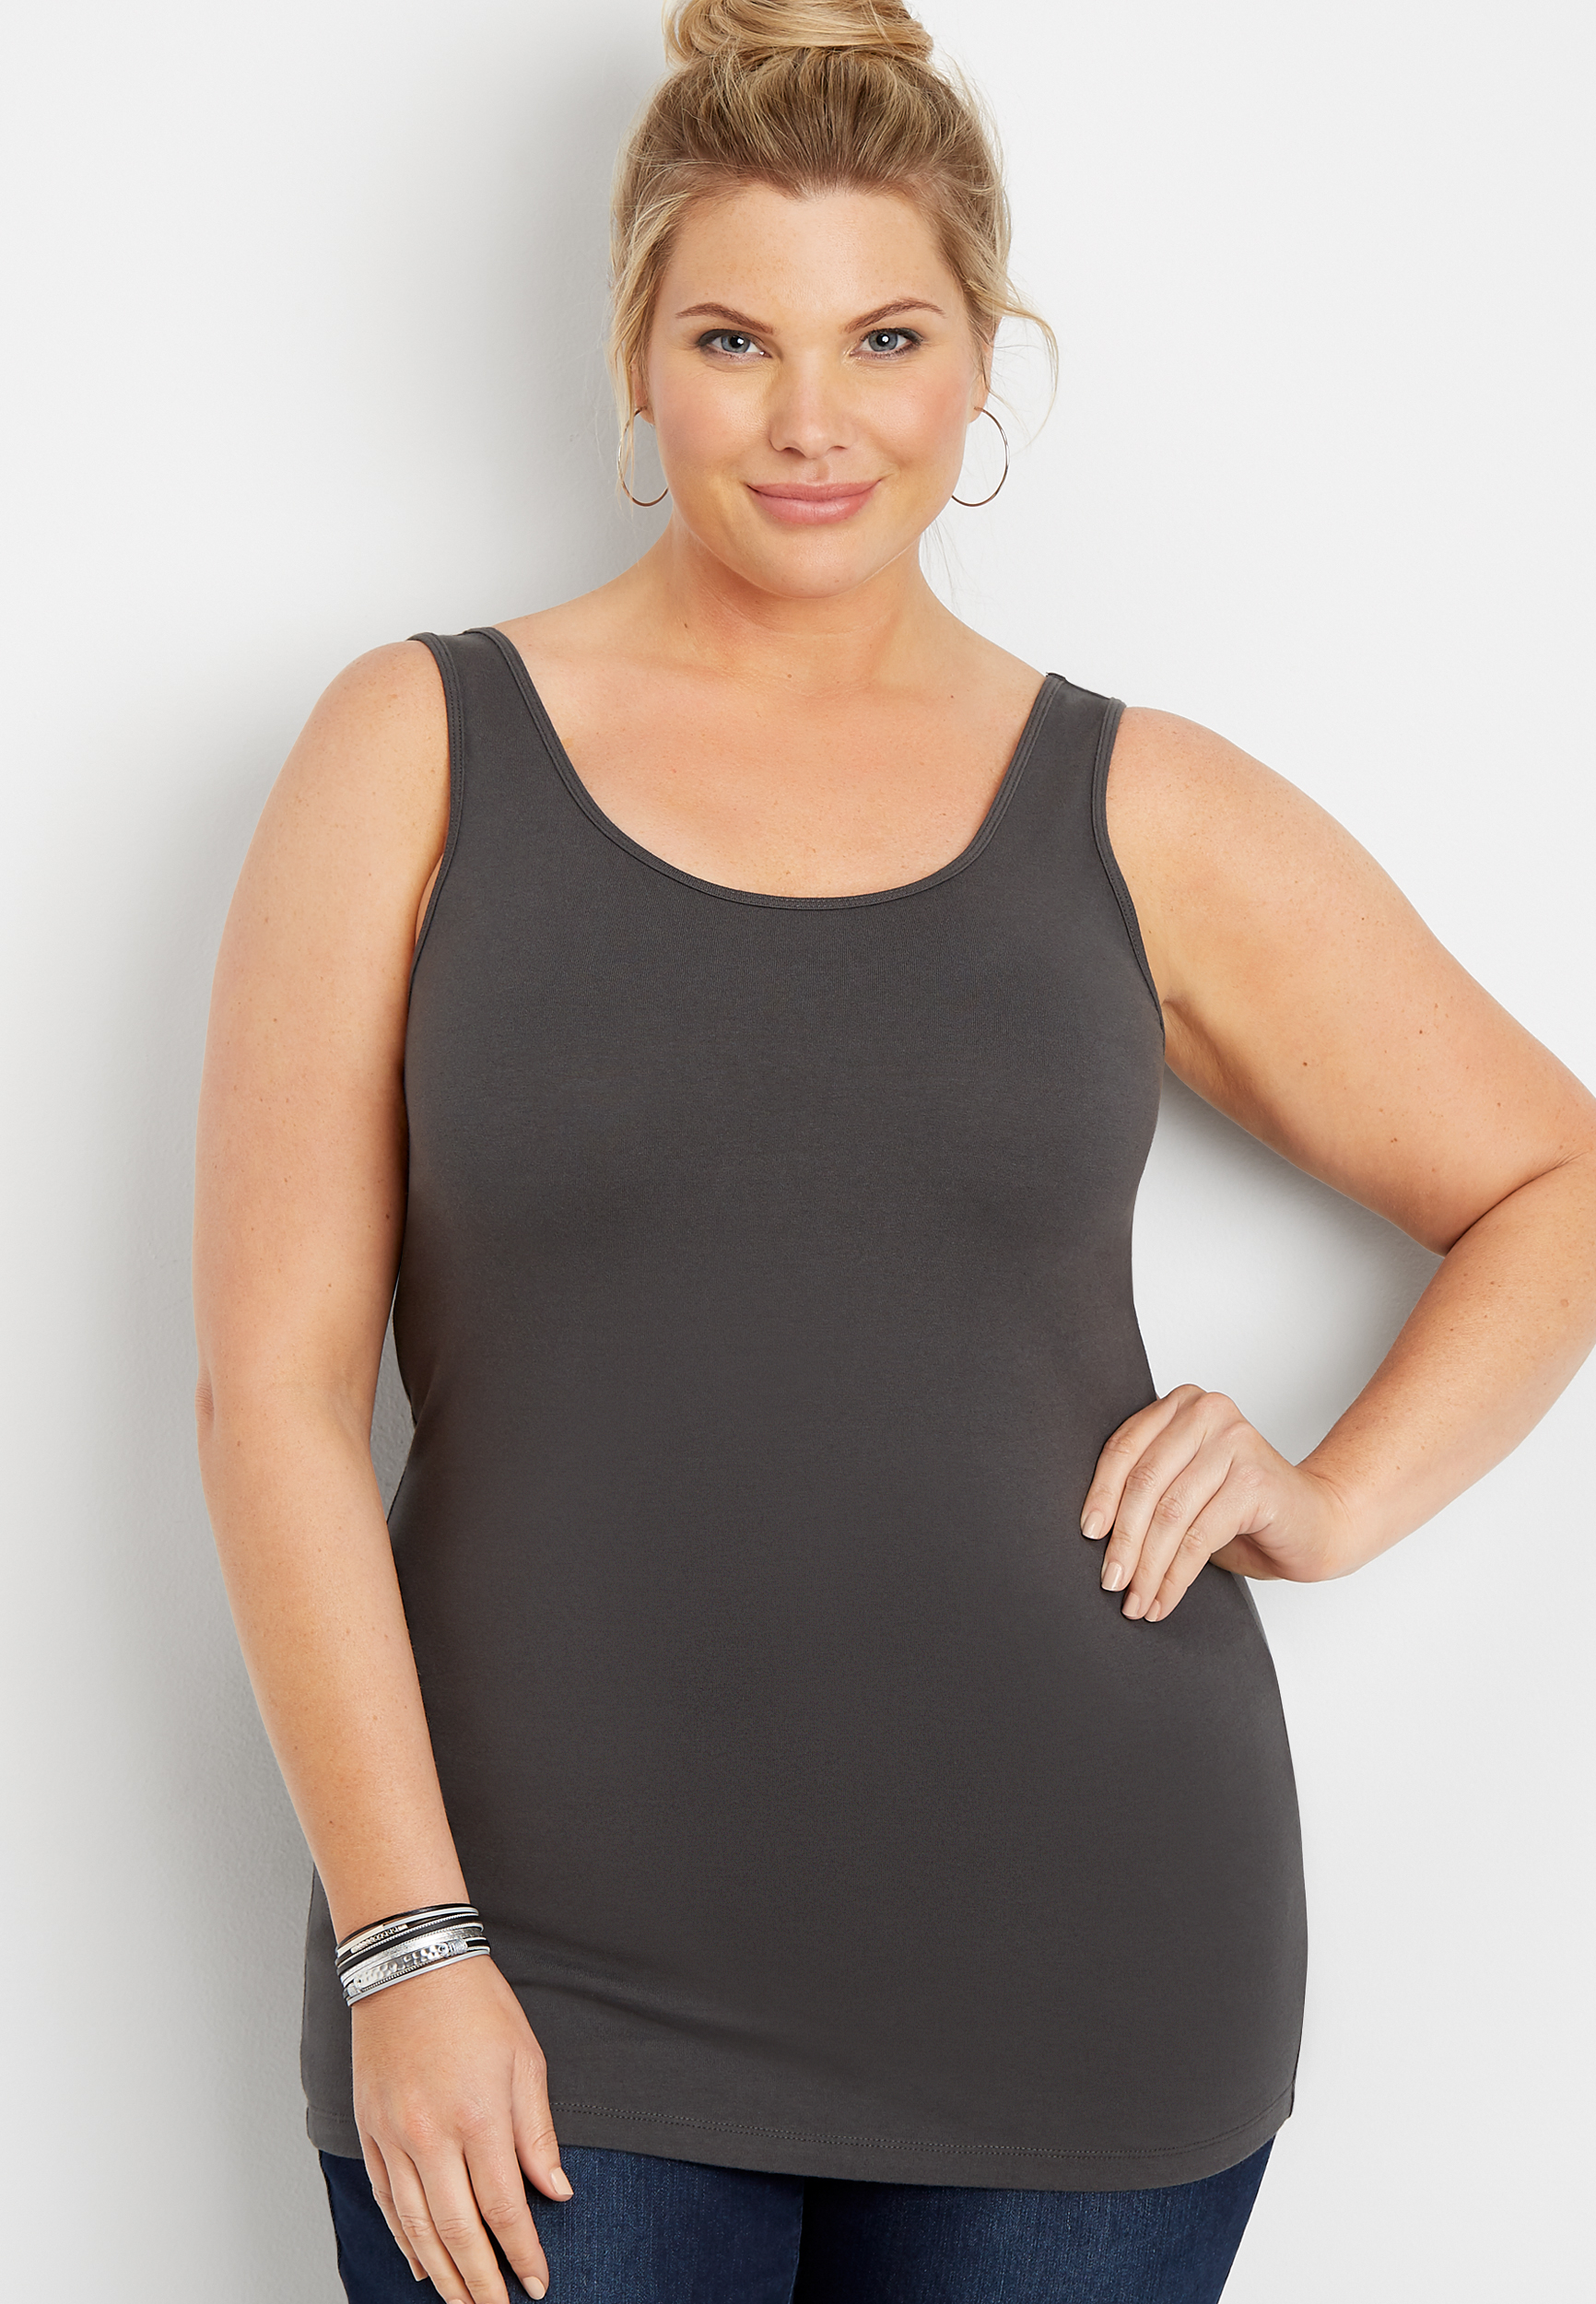 Maurices Plus Size Womens Neutral Scoop Neck Tank Top Gray - Size 0X